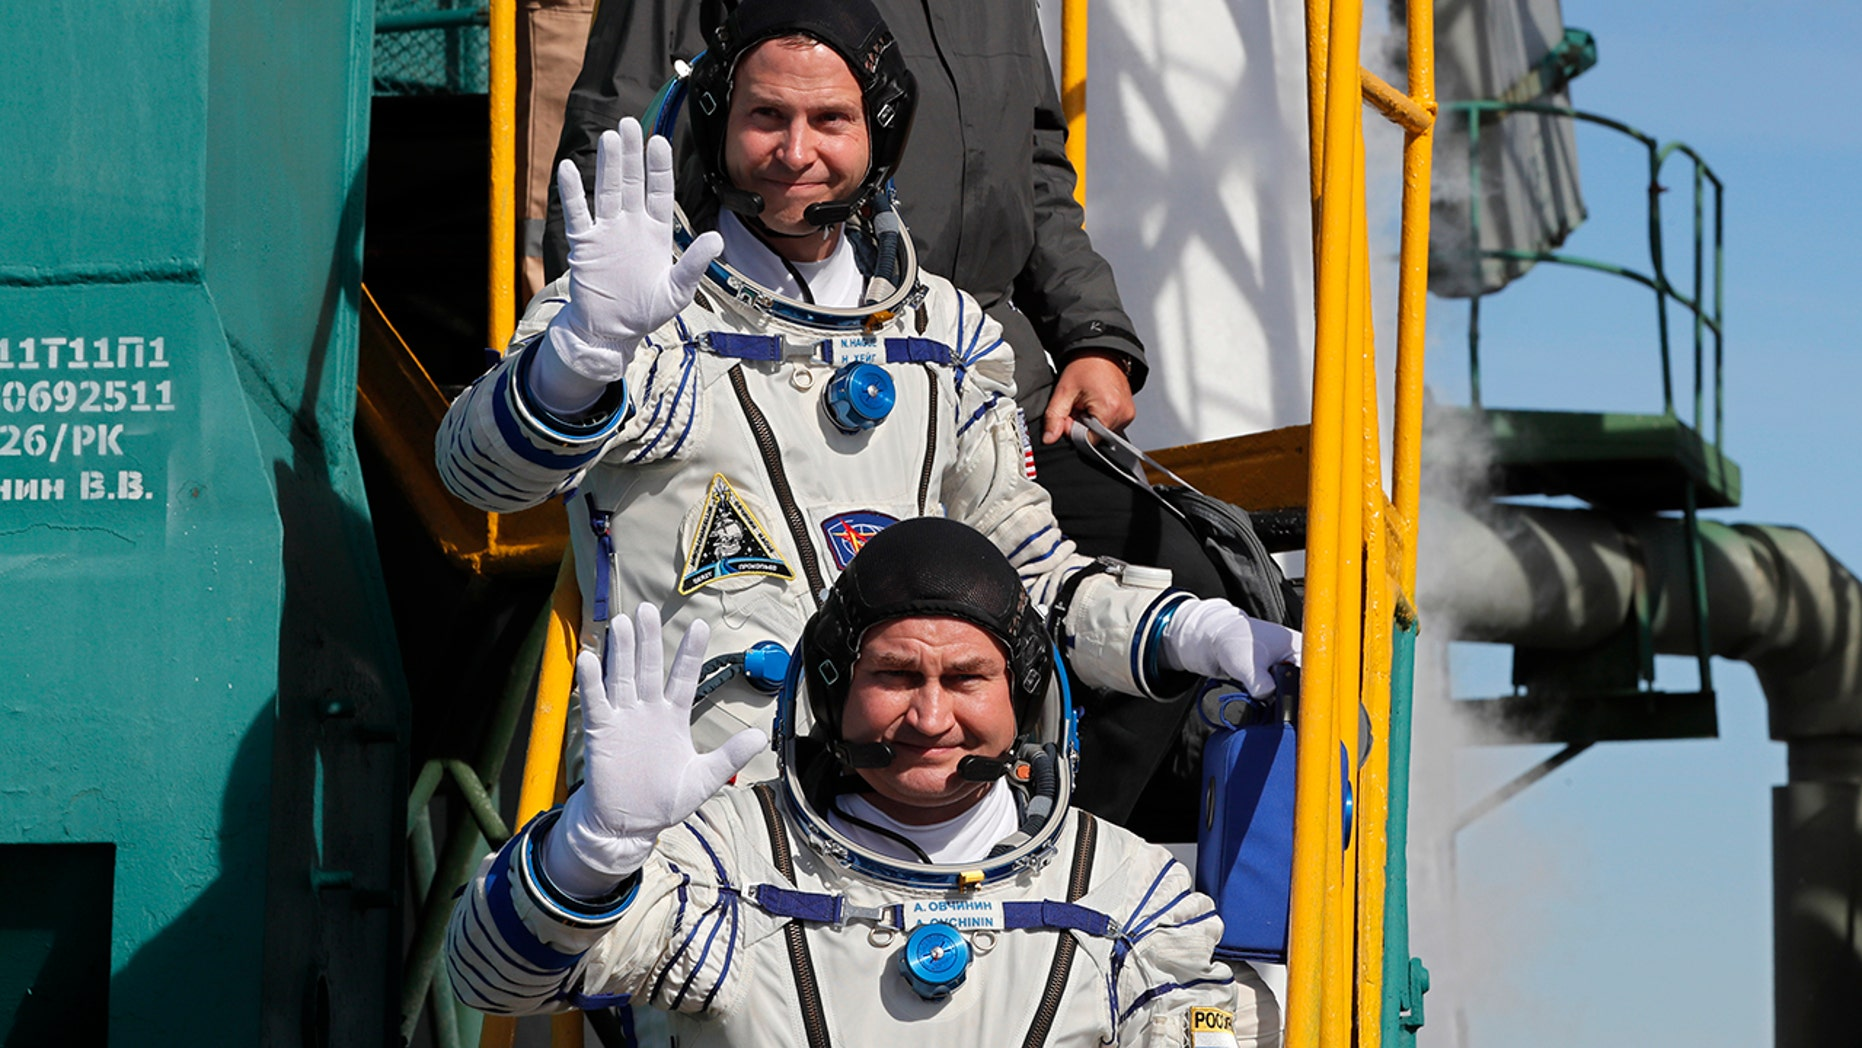 Astronauts make emergency landing after Soyuz rocket failure